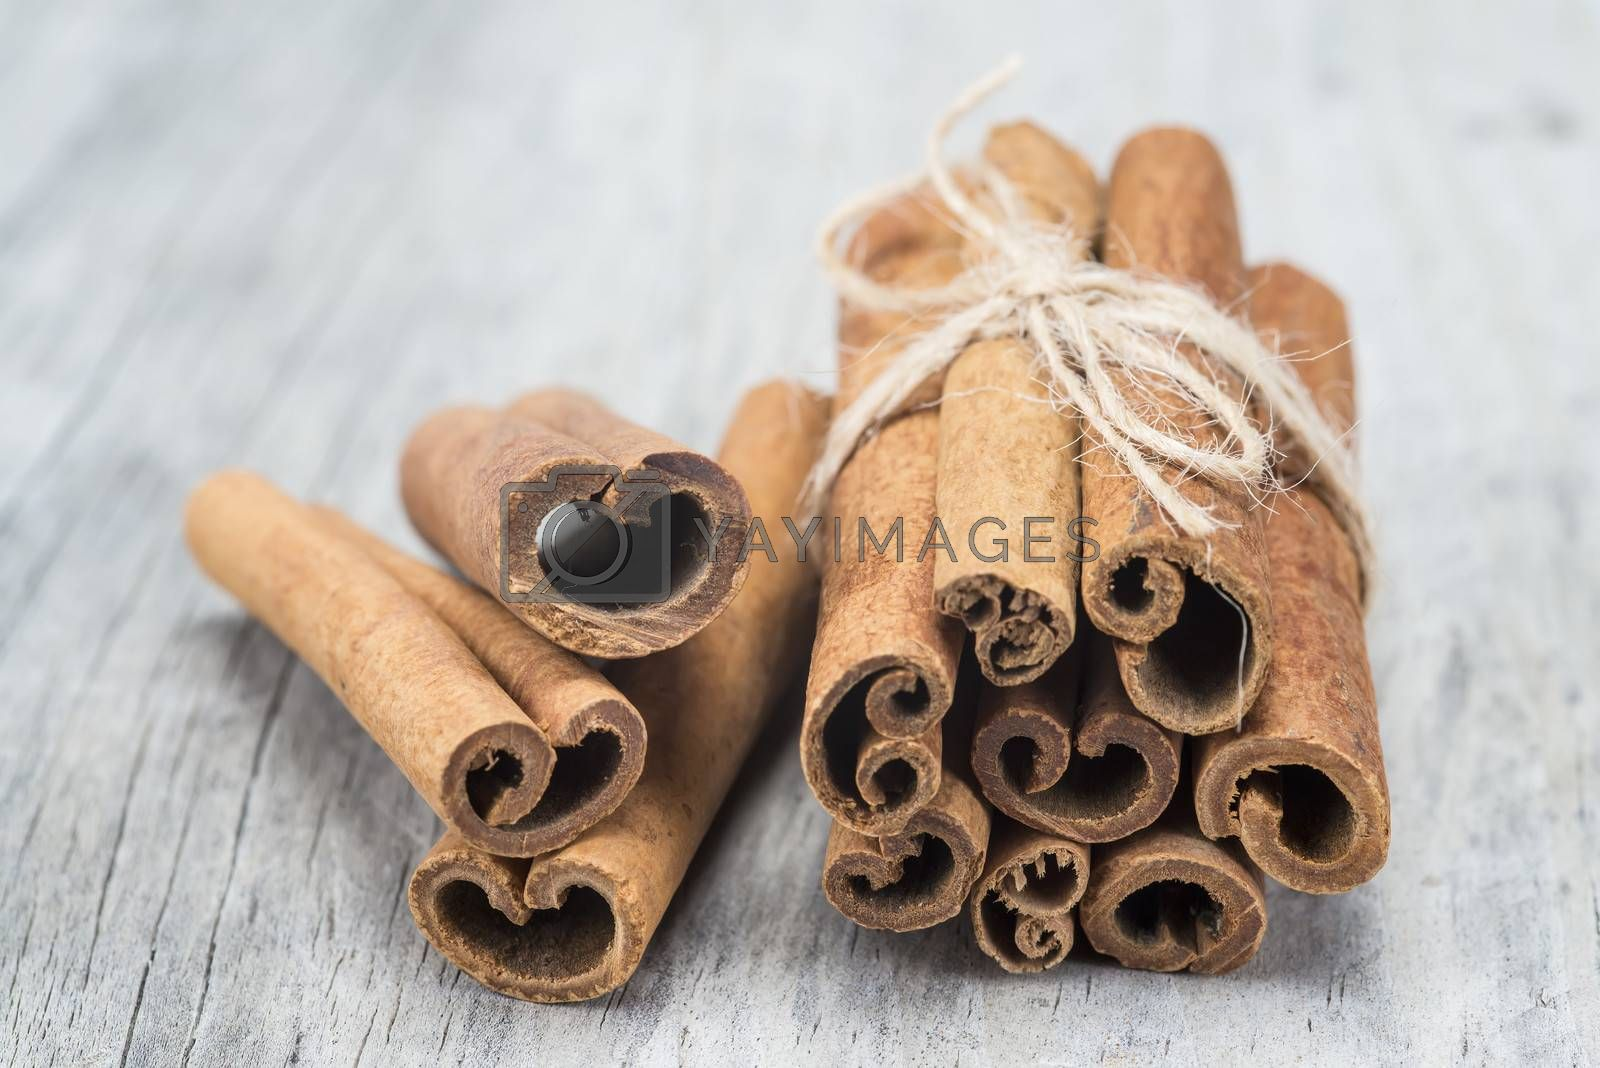 Cinnamon sticks on an old wooden table background